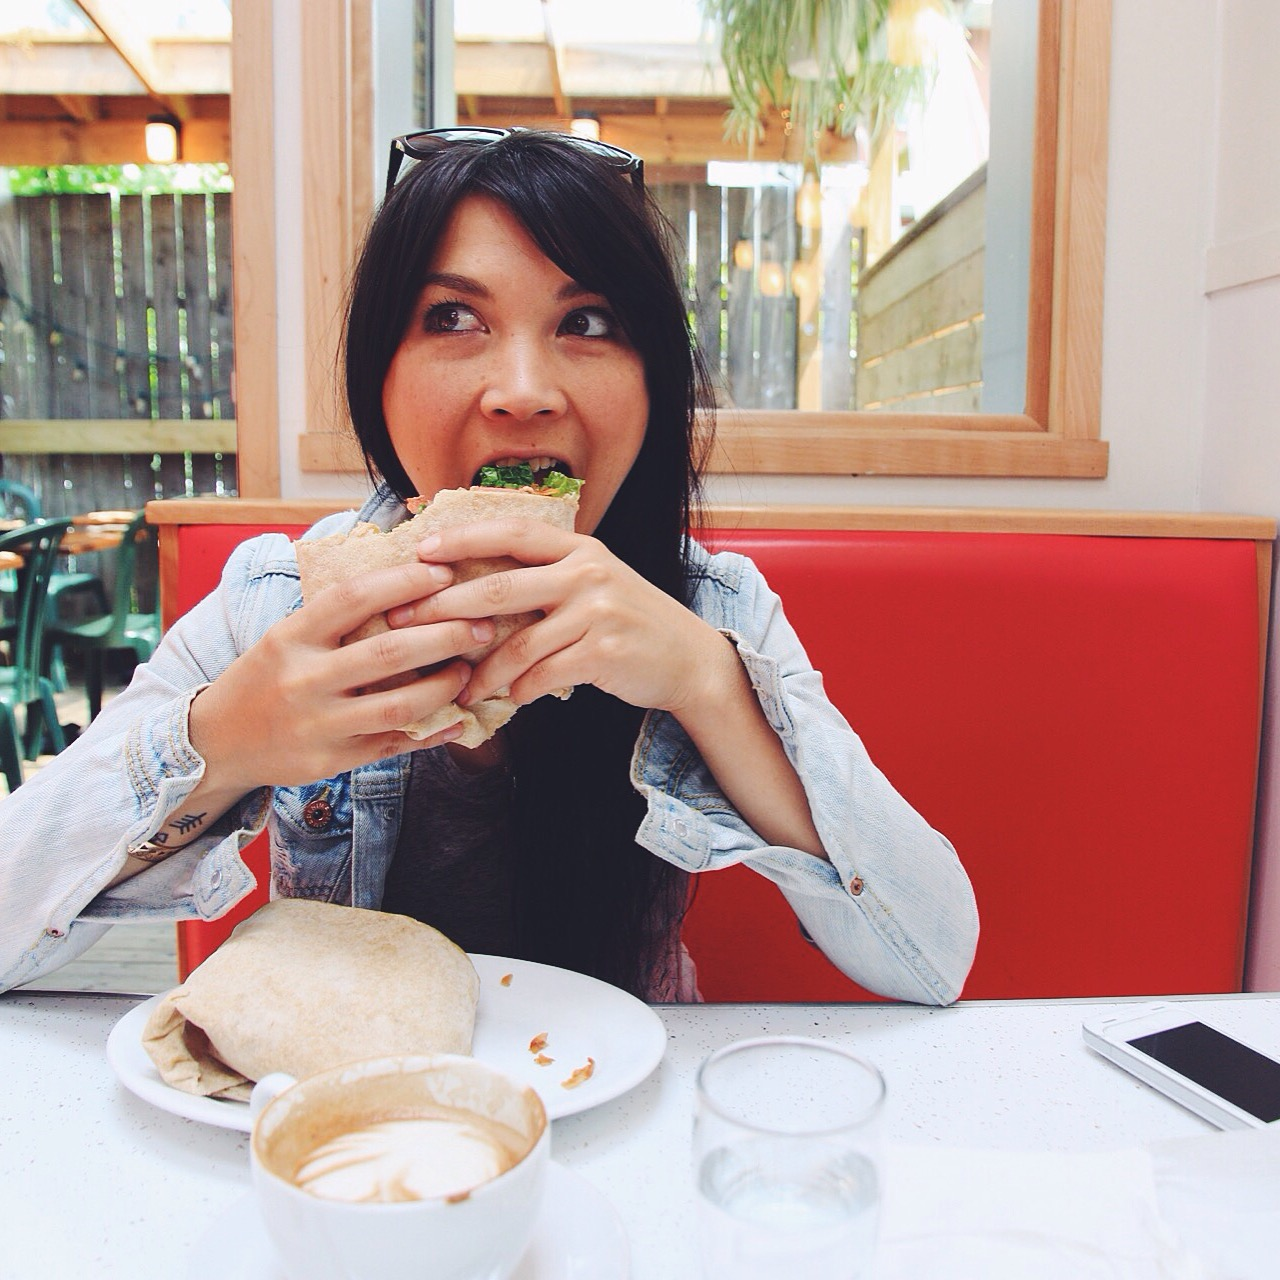 5 Minutes with Lauren Toyota | The Lawless Vegan